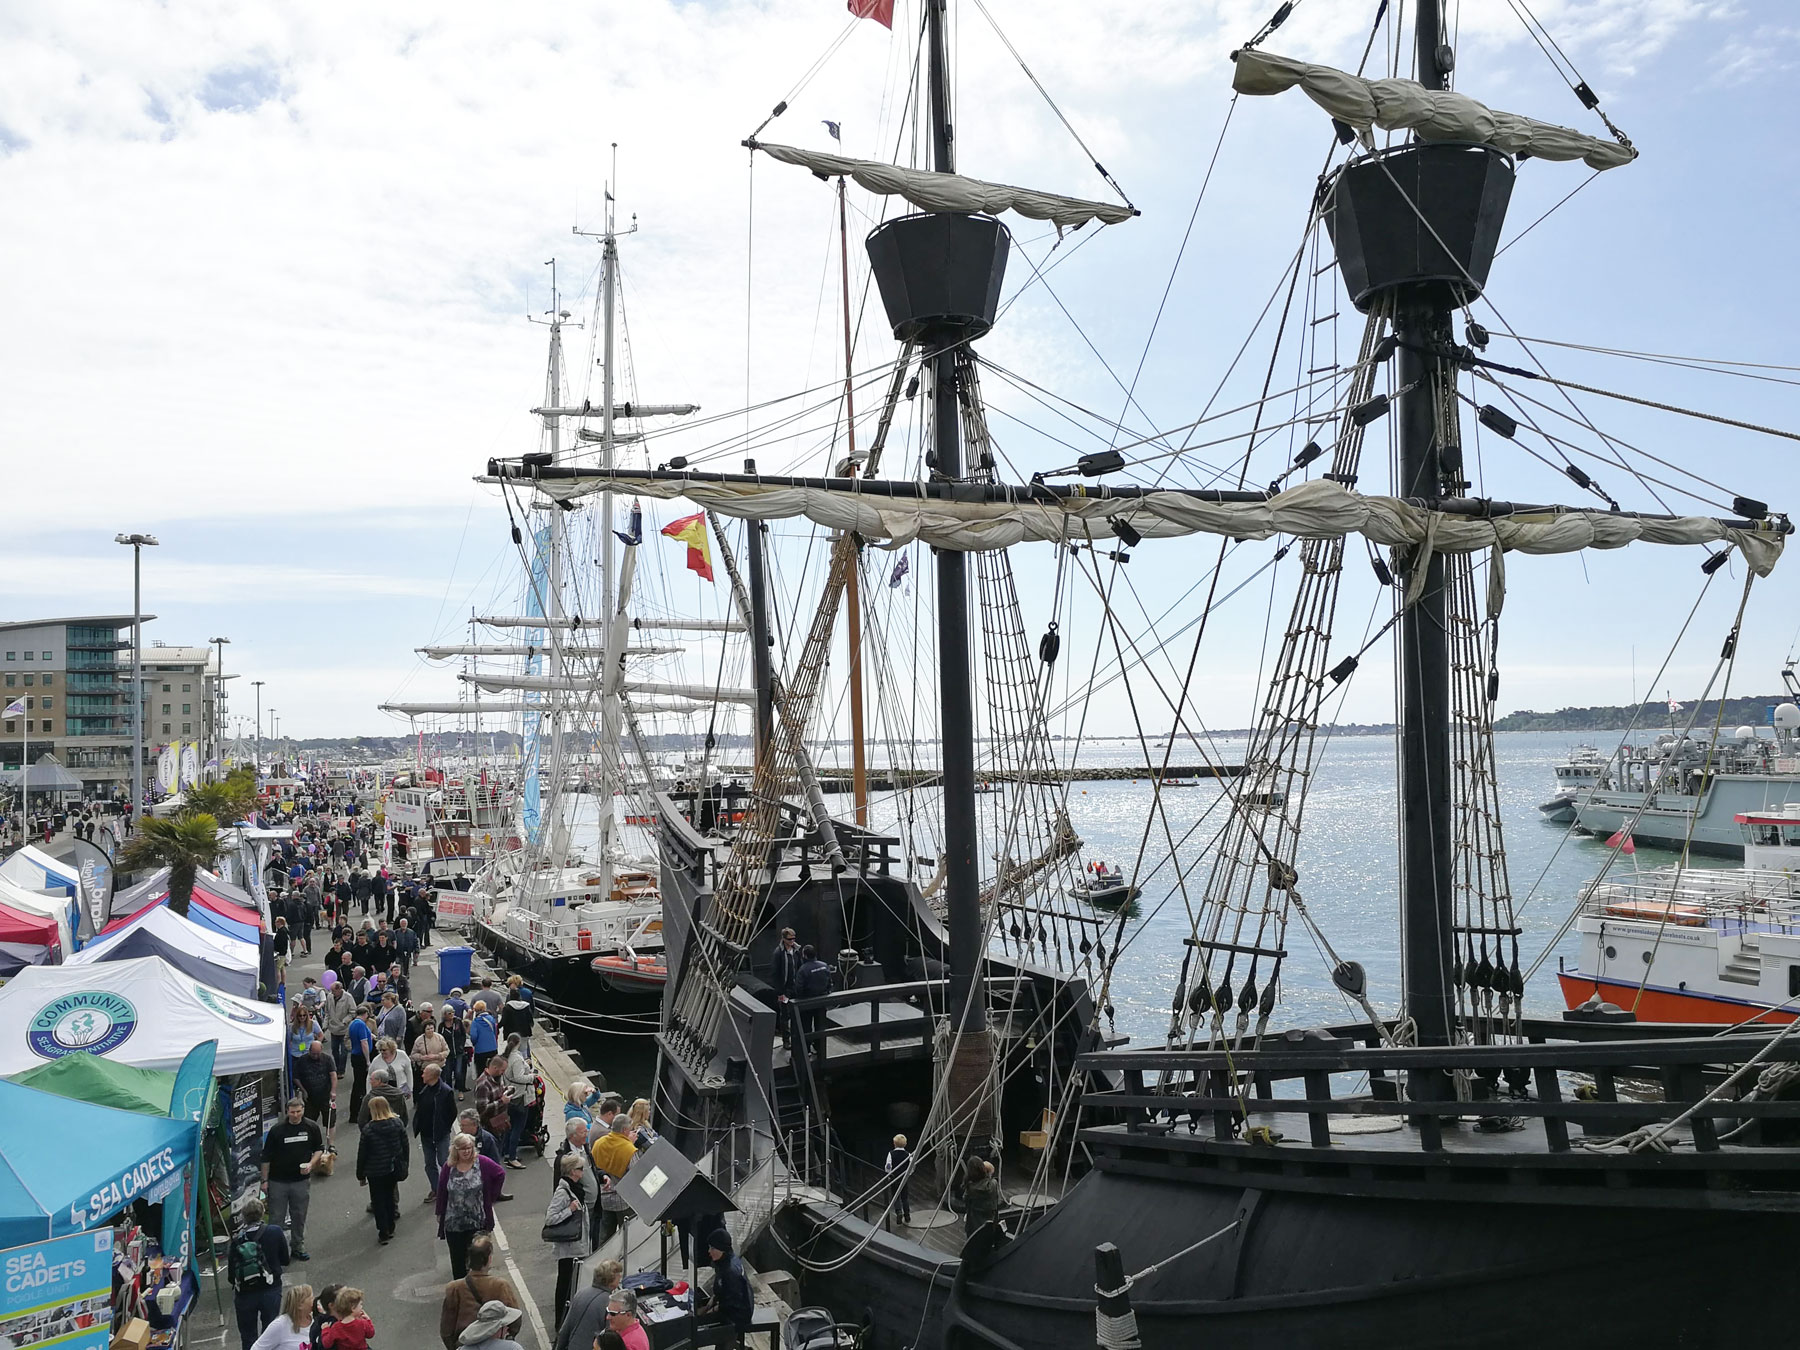 The Poole Harbour Boat Show Sees 30% Increase in Visitors 3